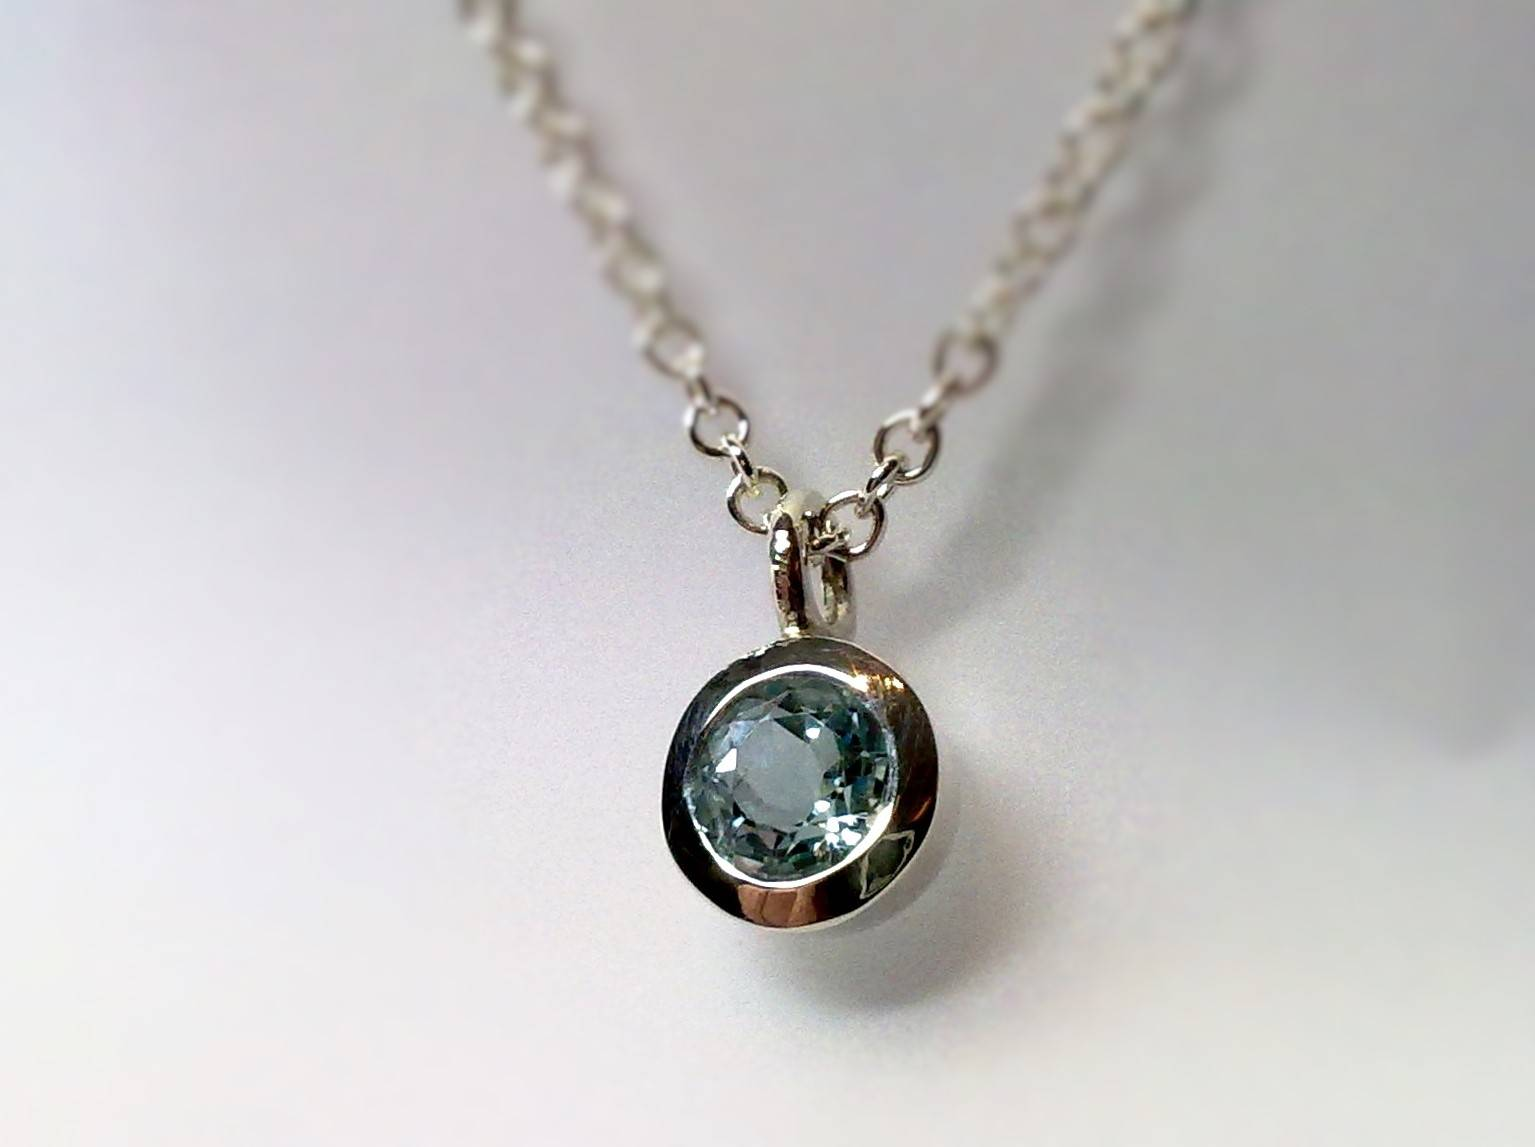 Topaz and silver pendant